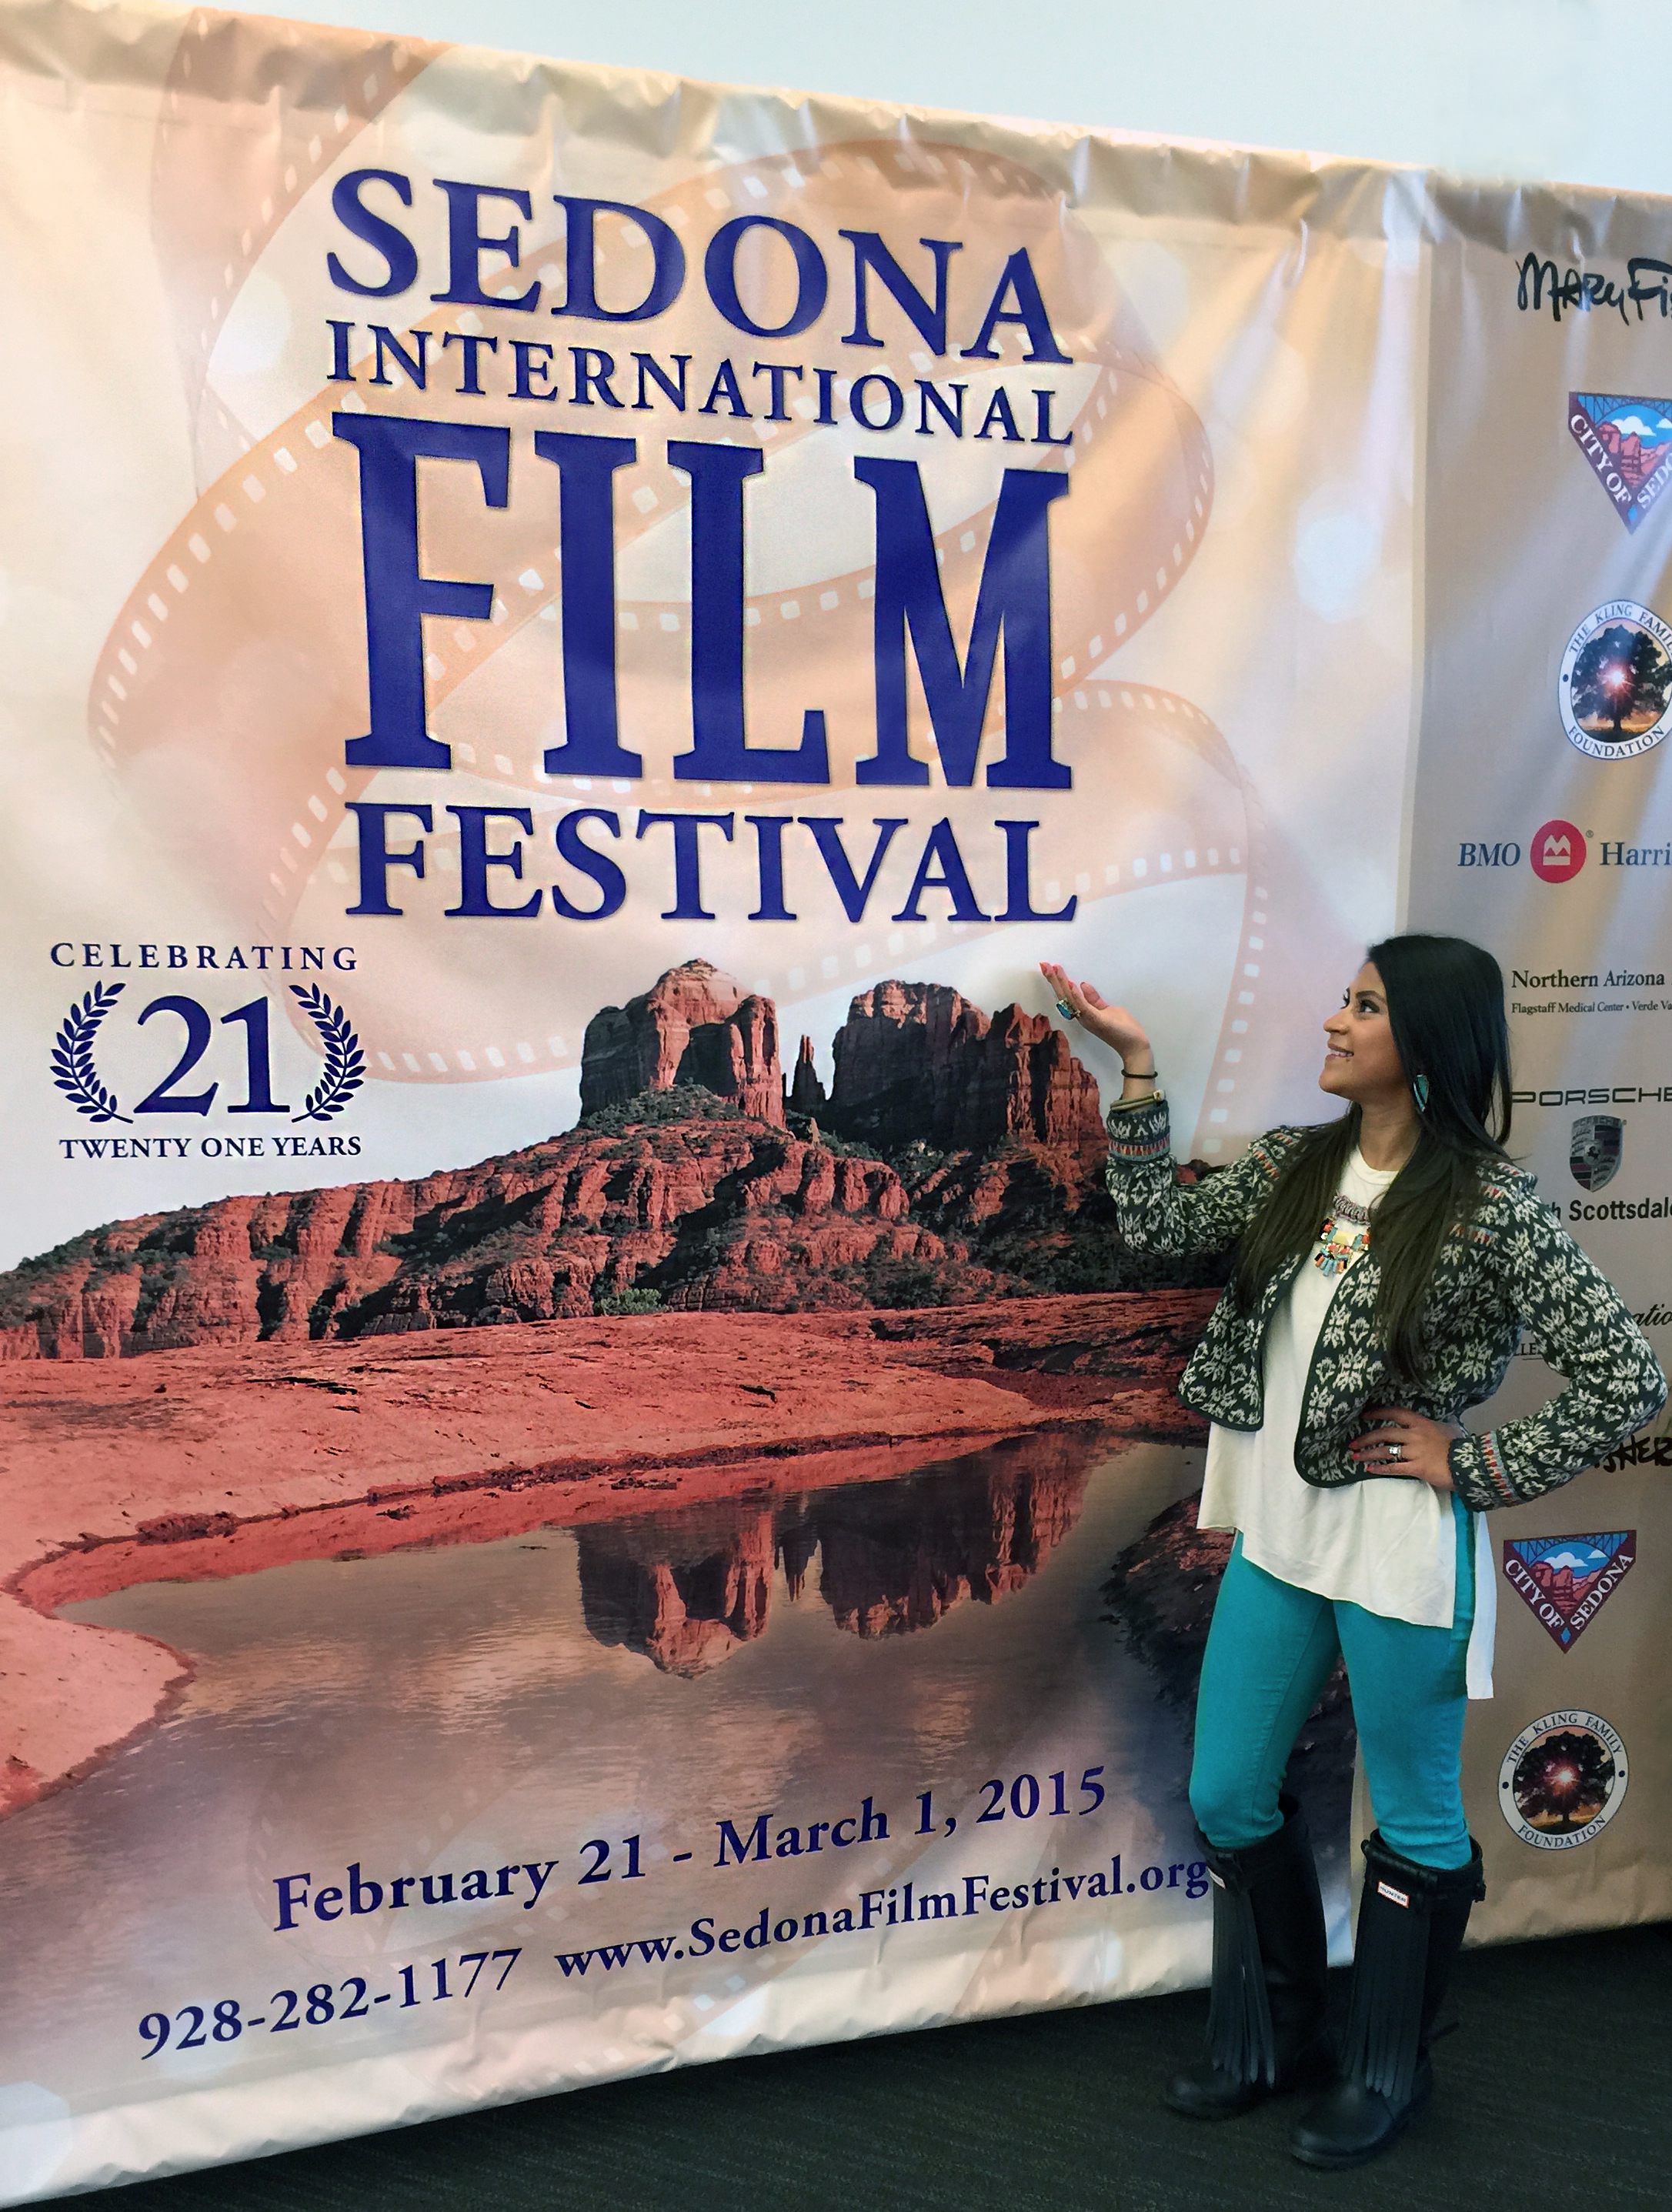 Sedona International Film Festival - Agile Ticketing